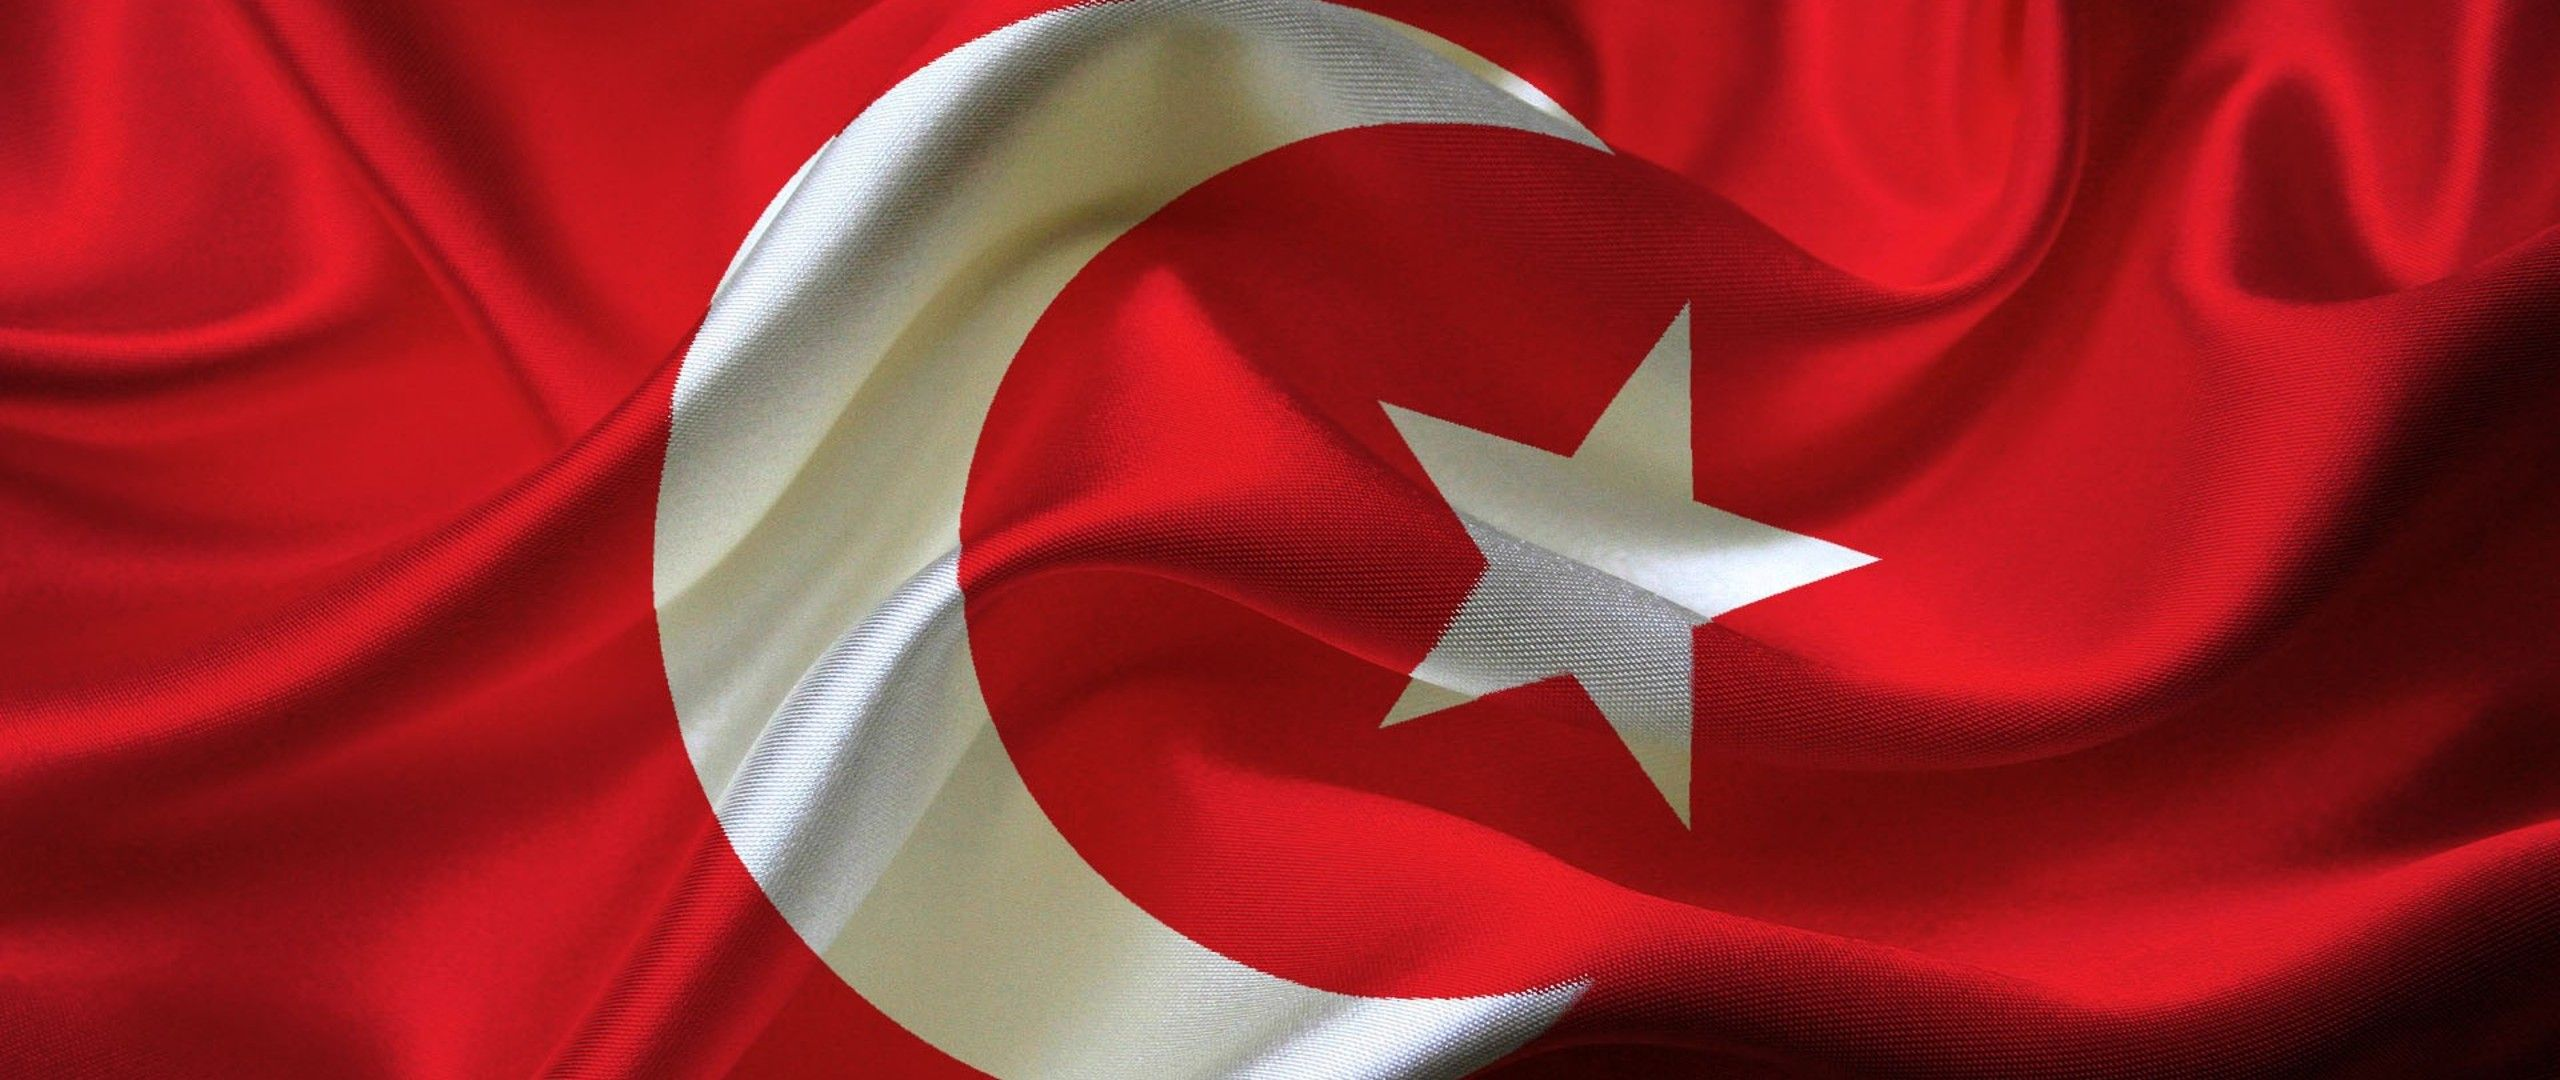 1920x1200 Eagle The Turkish Flag Wallpapers And Images